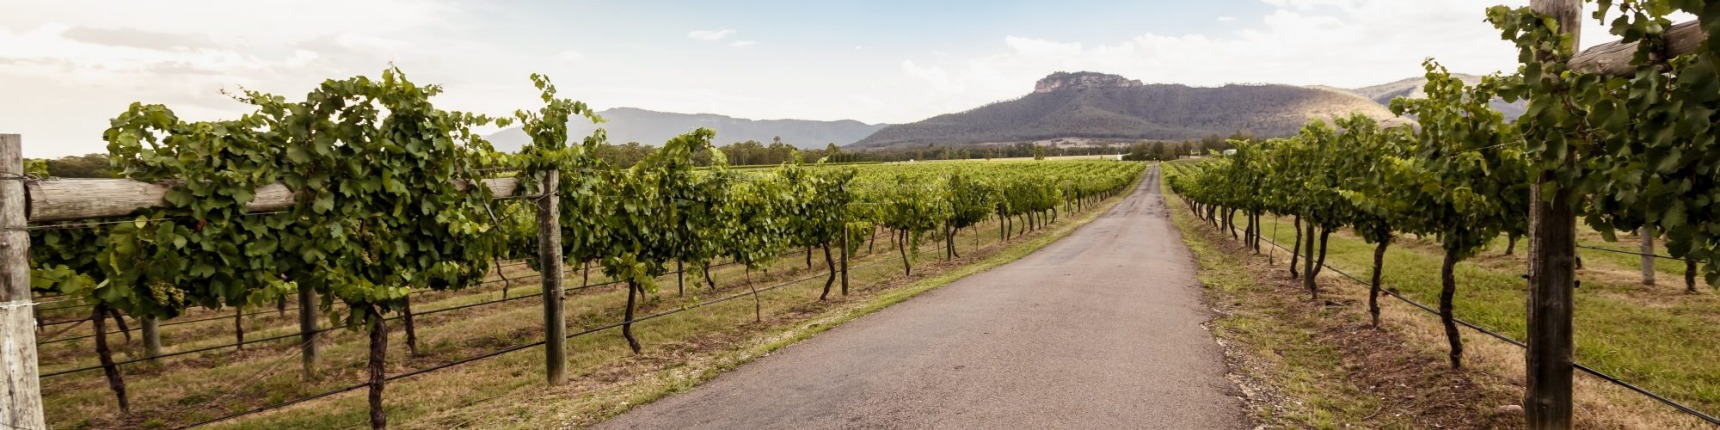 Hunter valley nsw new south wales australia